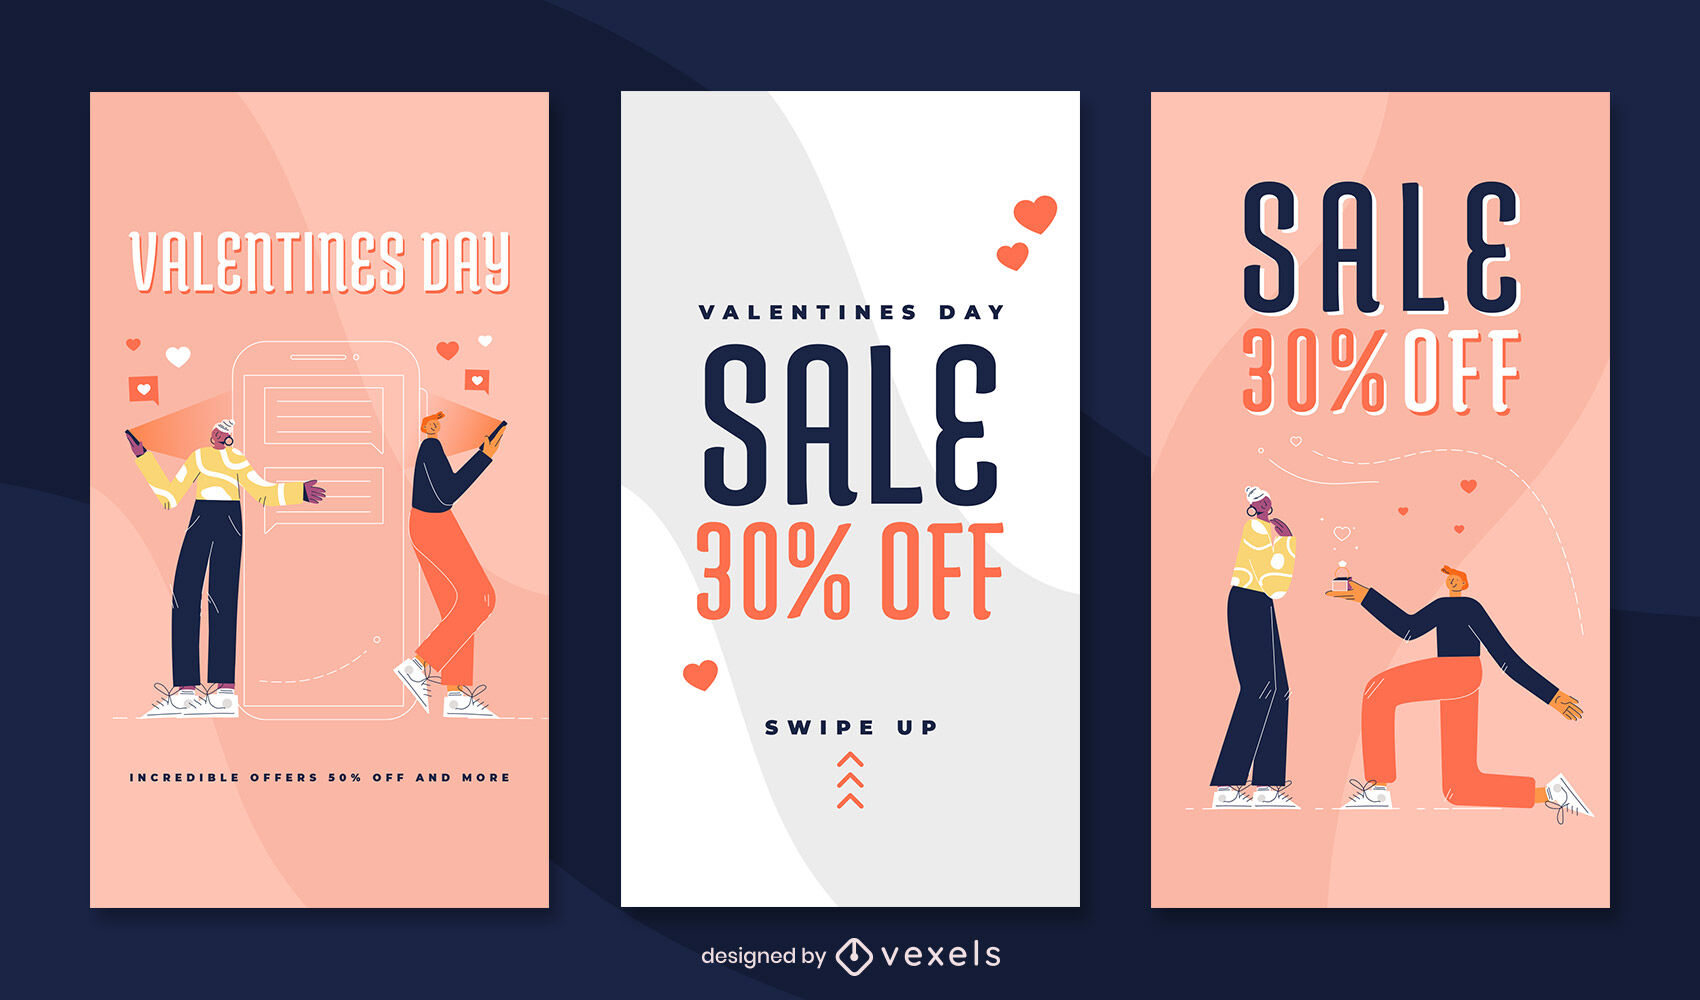 Valentines day love story design template